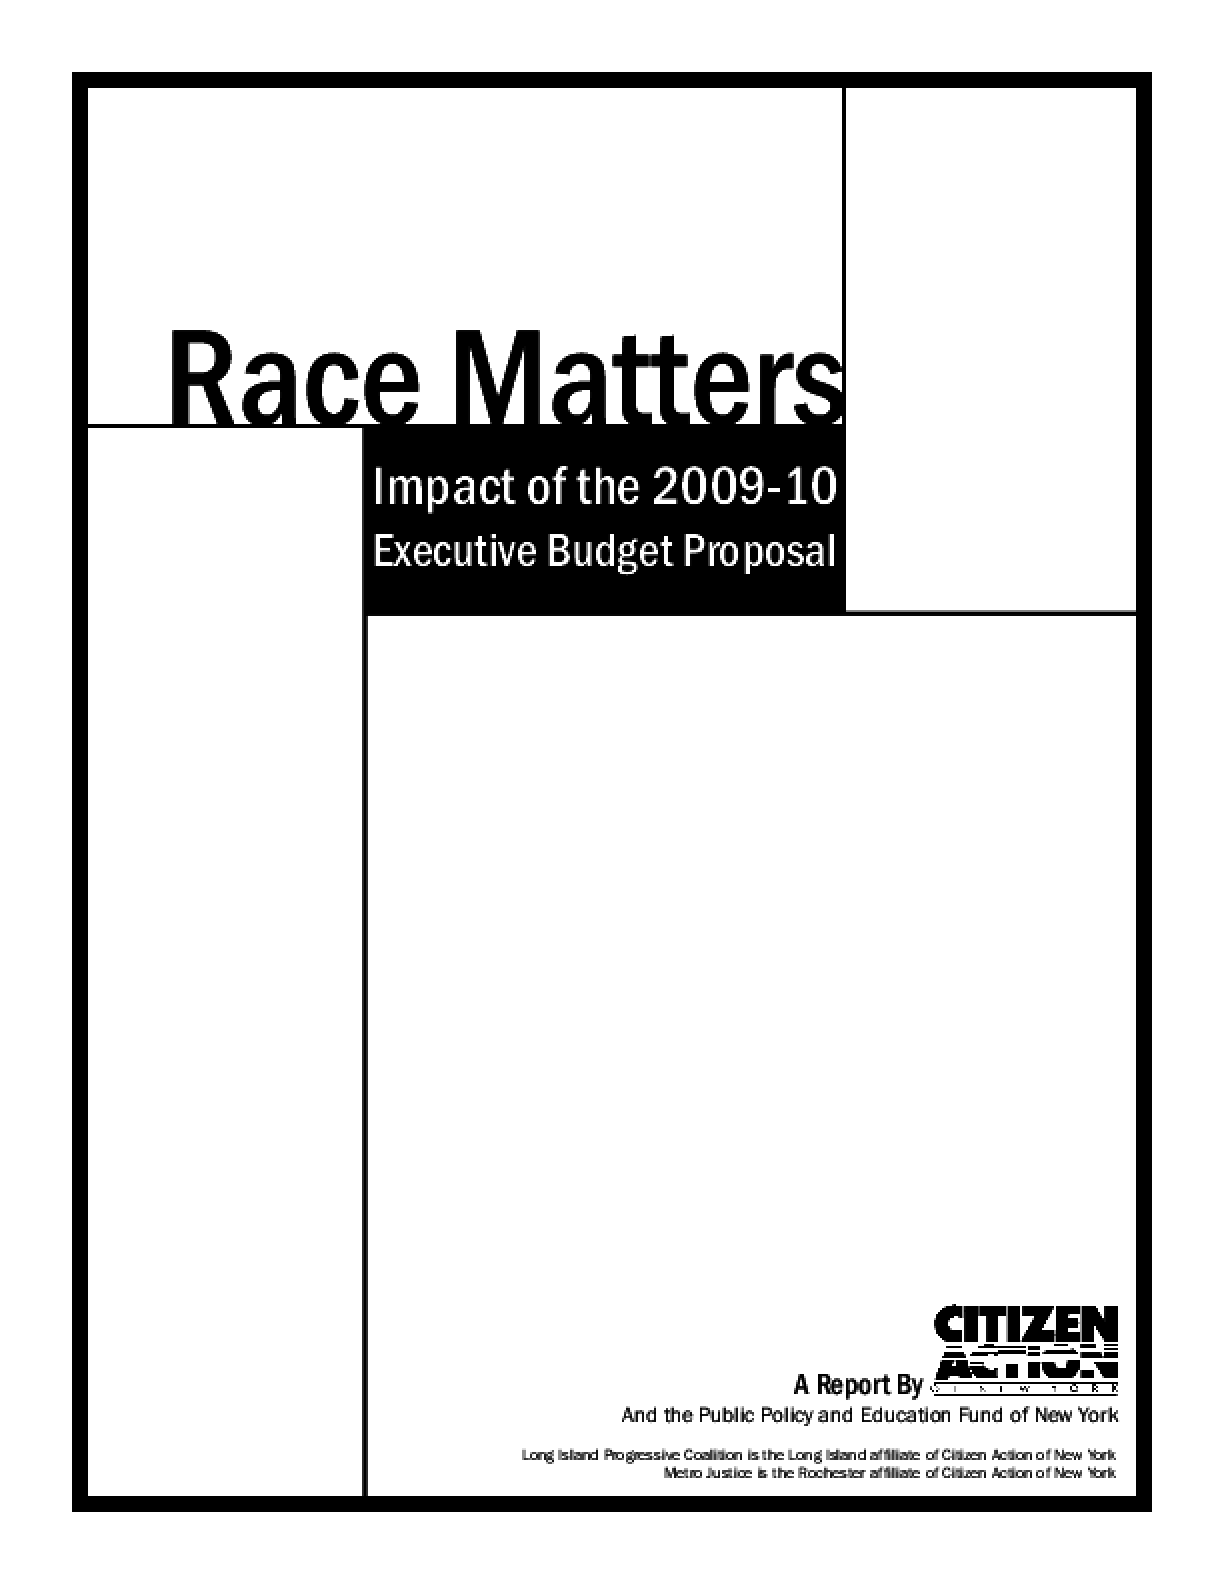 Race Matters: Impact of the 2009-10 Executive Budget Proposal